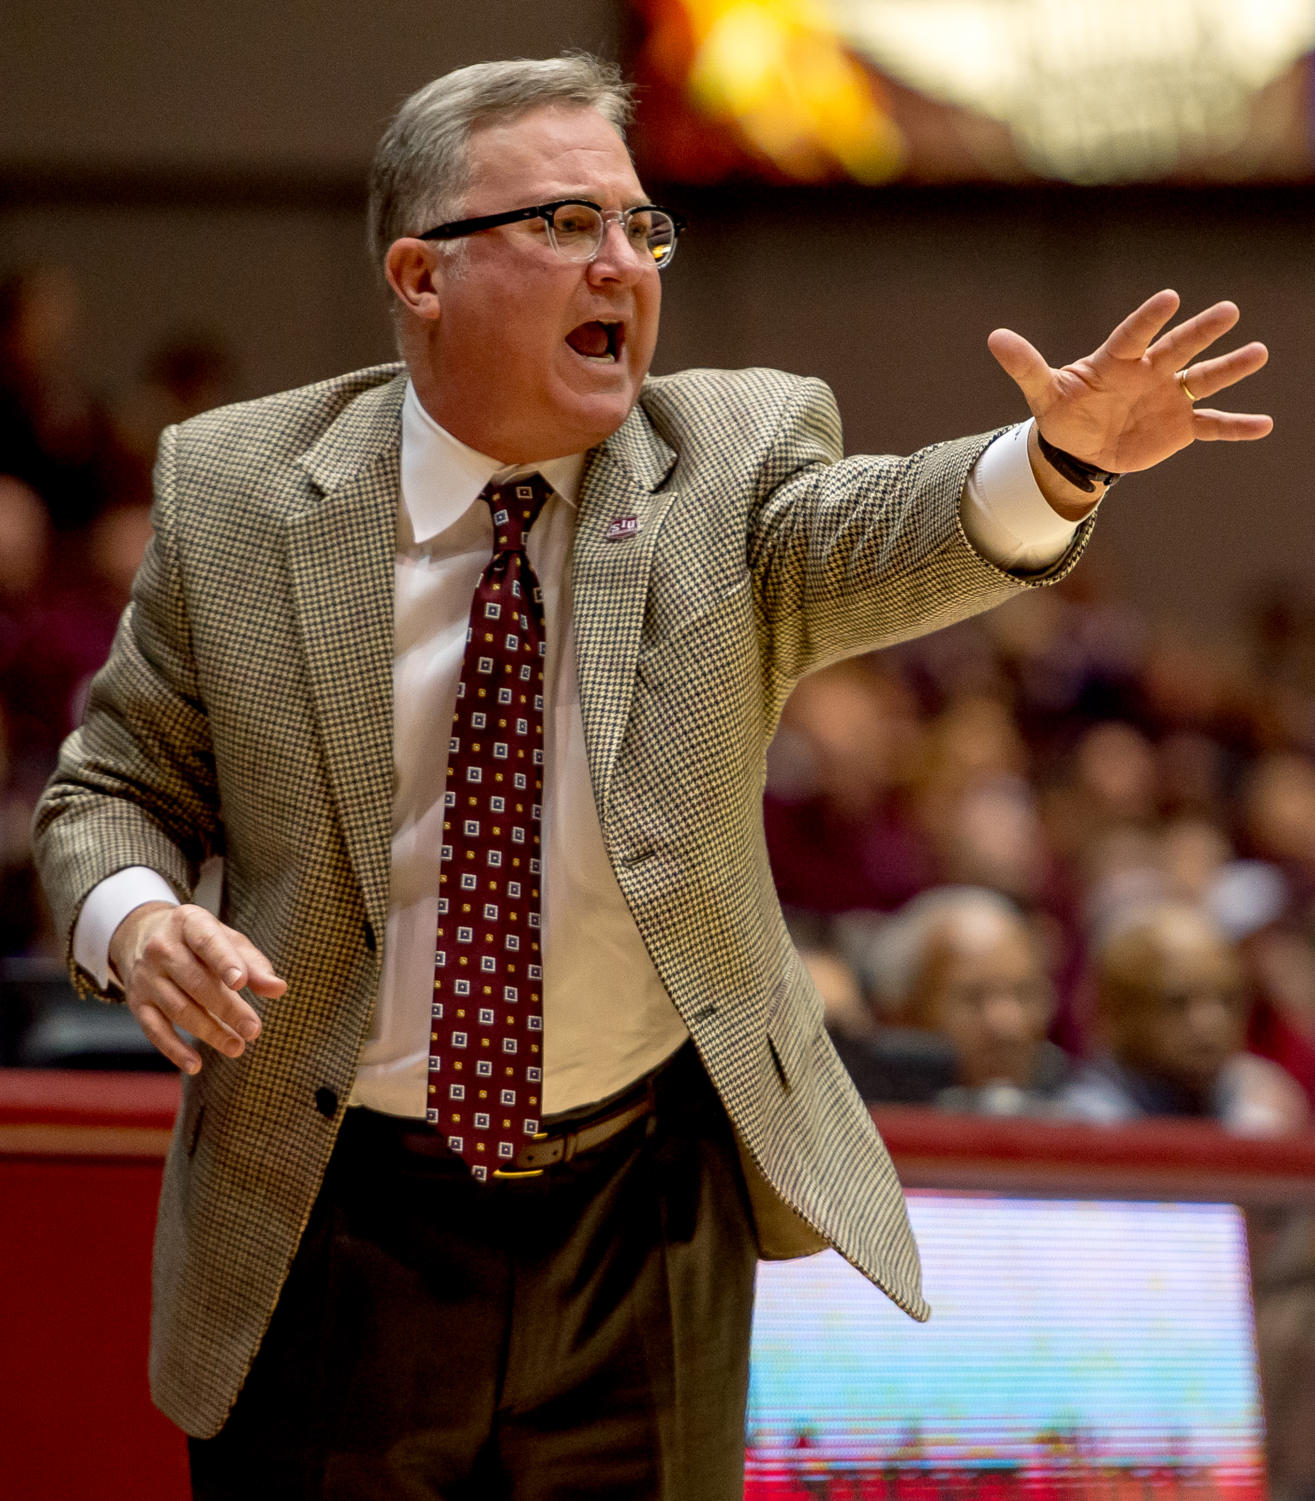 Head+coach+Barry+Hinson+calls+out+to+his+players+Sunday%2C+Jan.+21%2C+2018%2C+during+the+Salukis%27+64-53+victory+over+the+University+of+Northern+Iowa+Panthers+at+SIU+Arena.+%28Brian+Munoz+%7C+%40BrianMMunoz%29